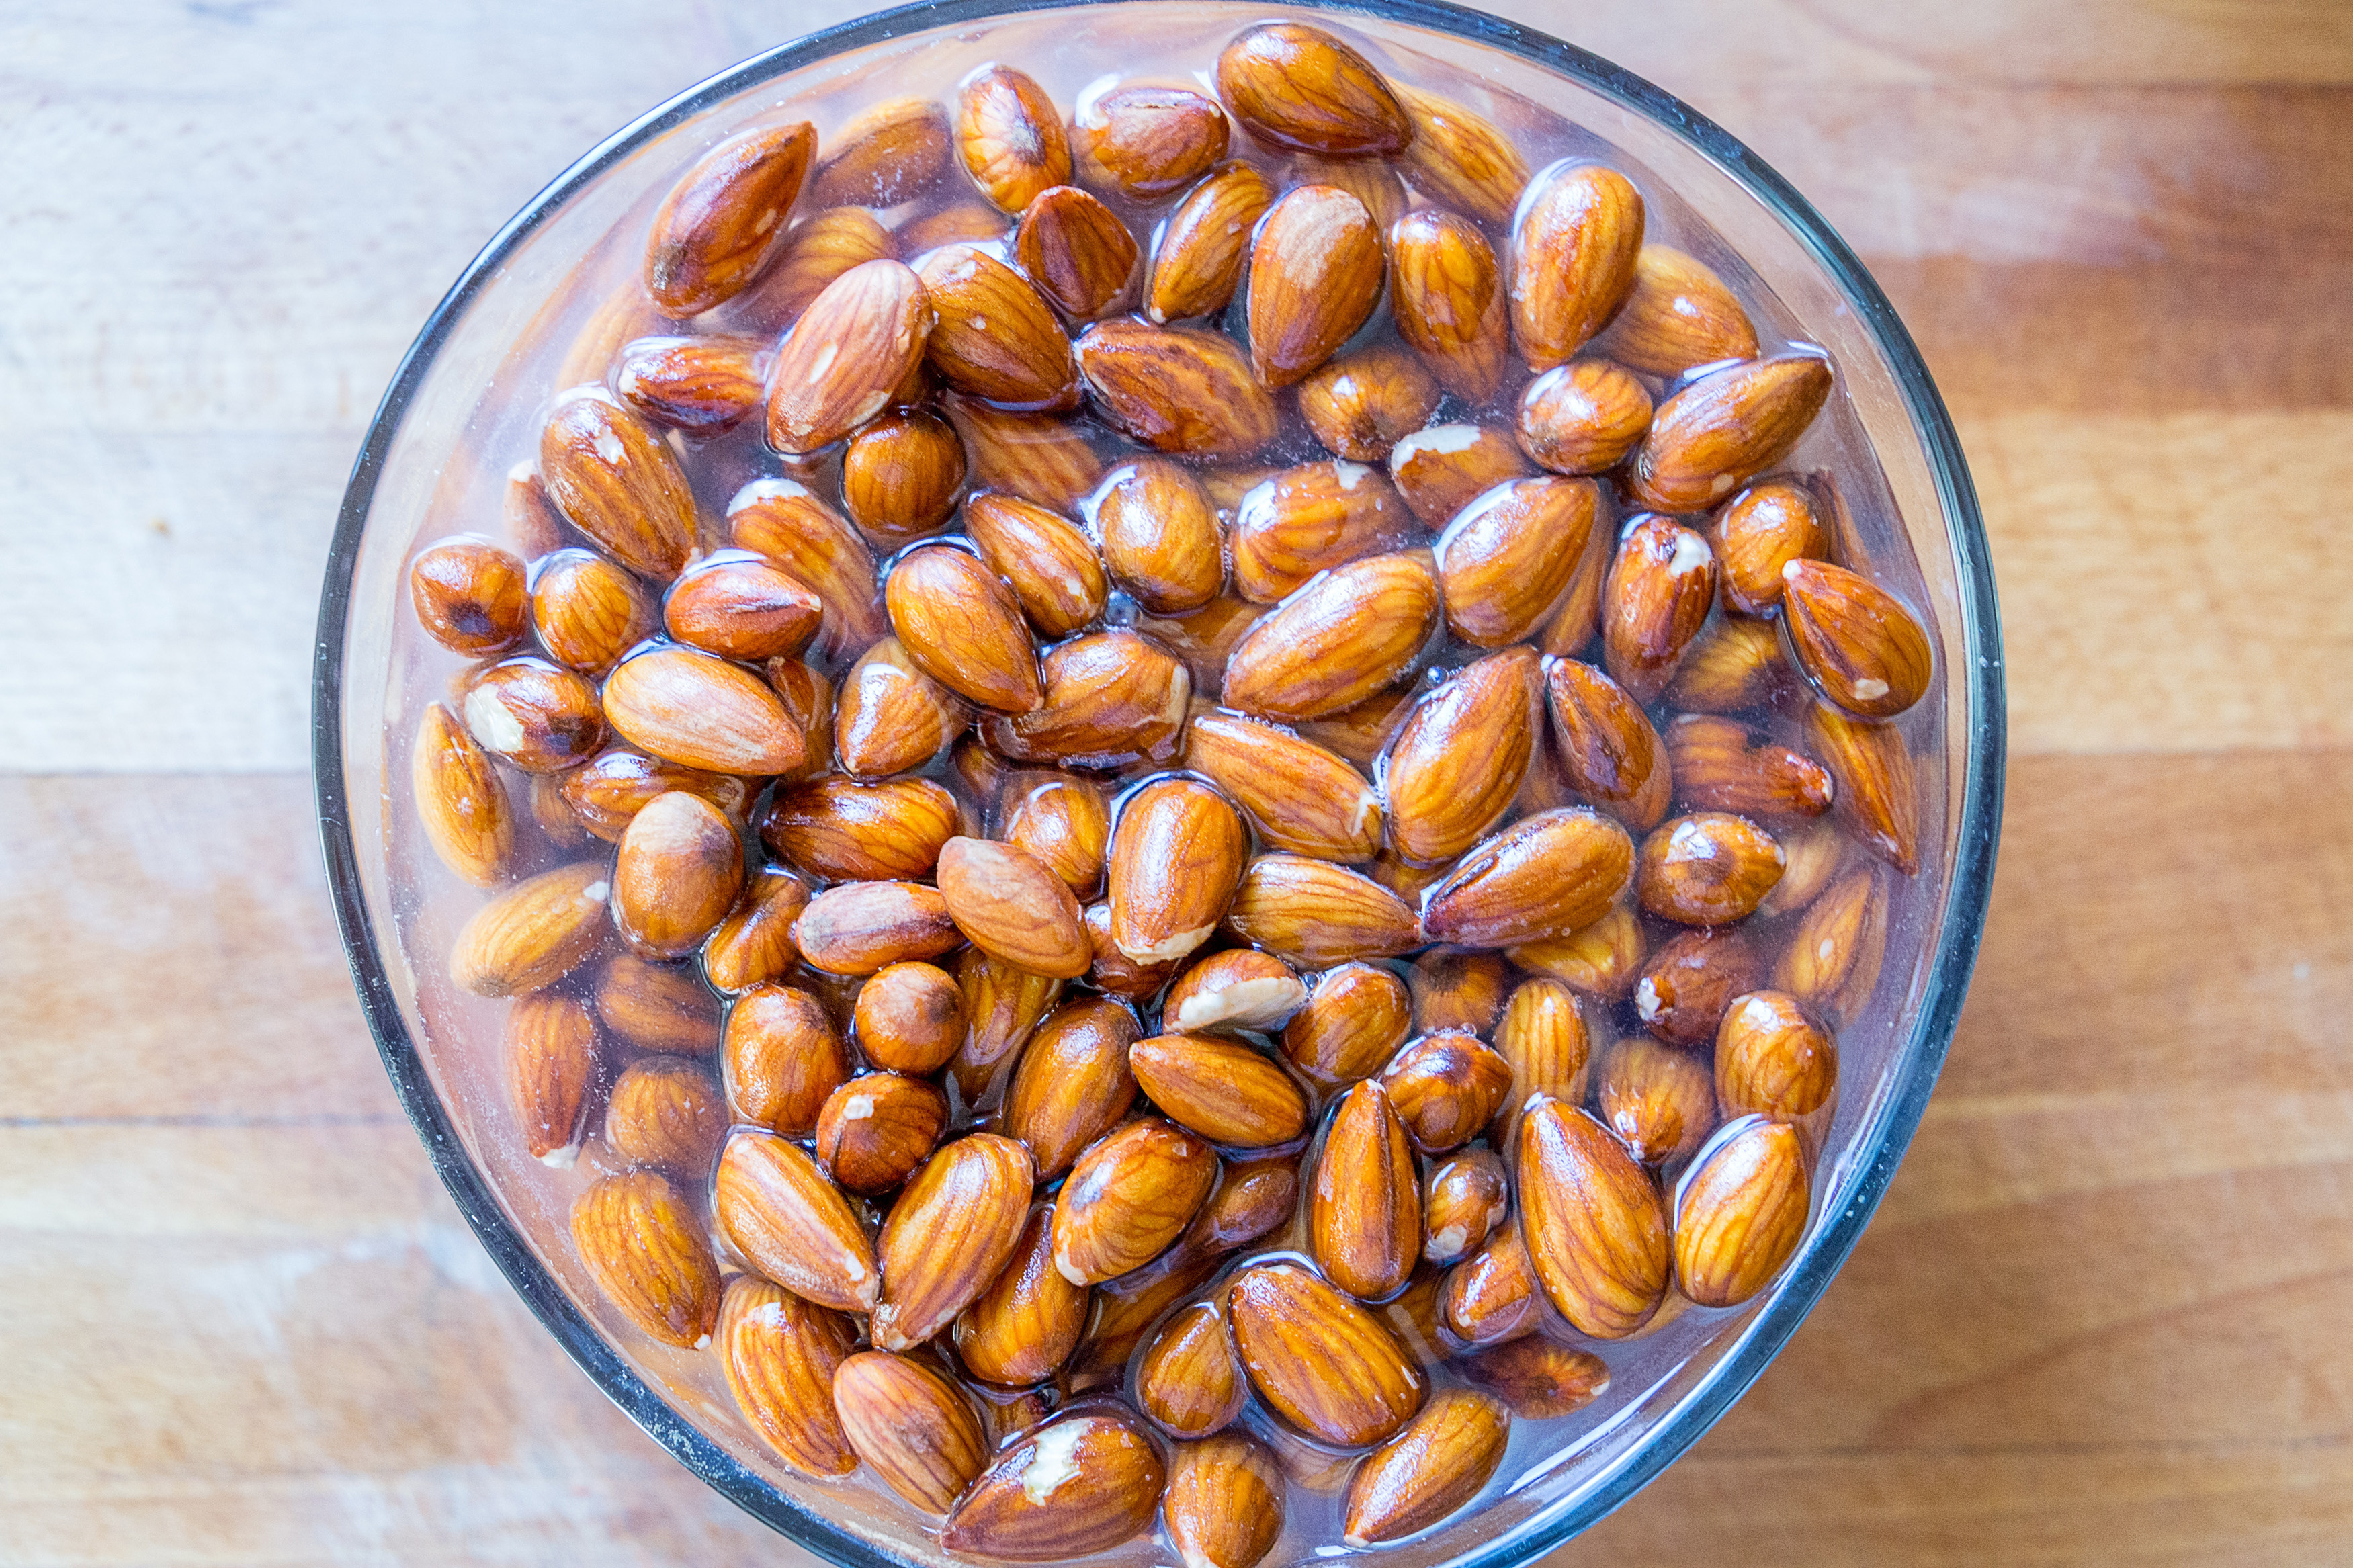 soaking nuts myth